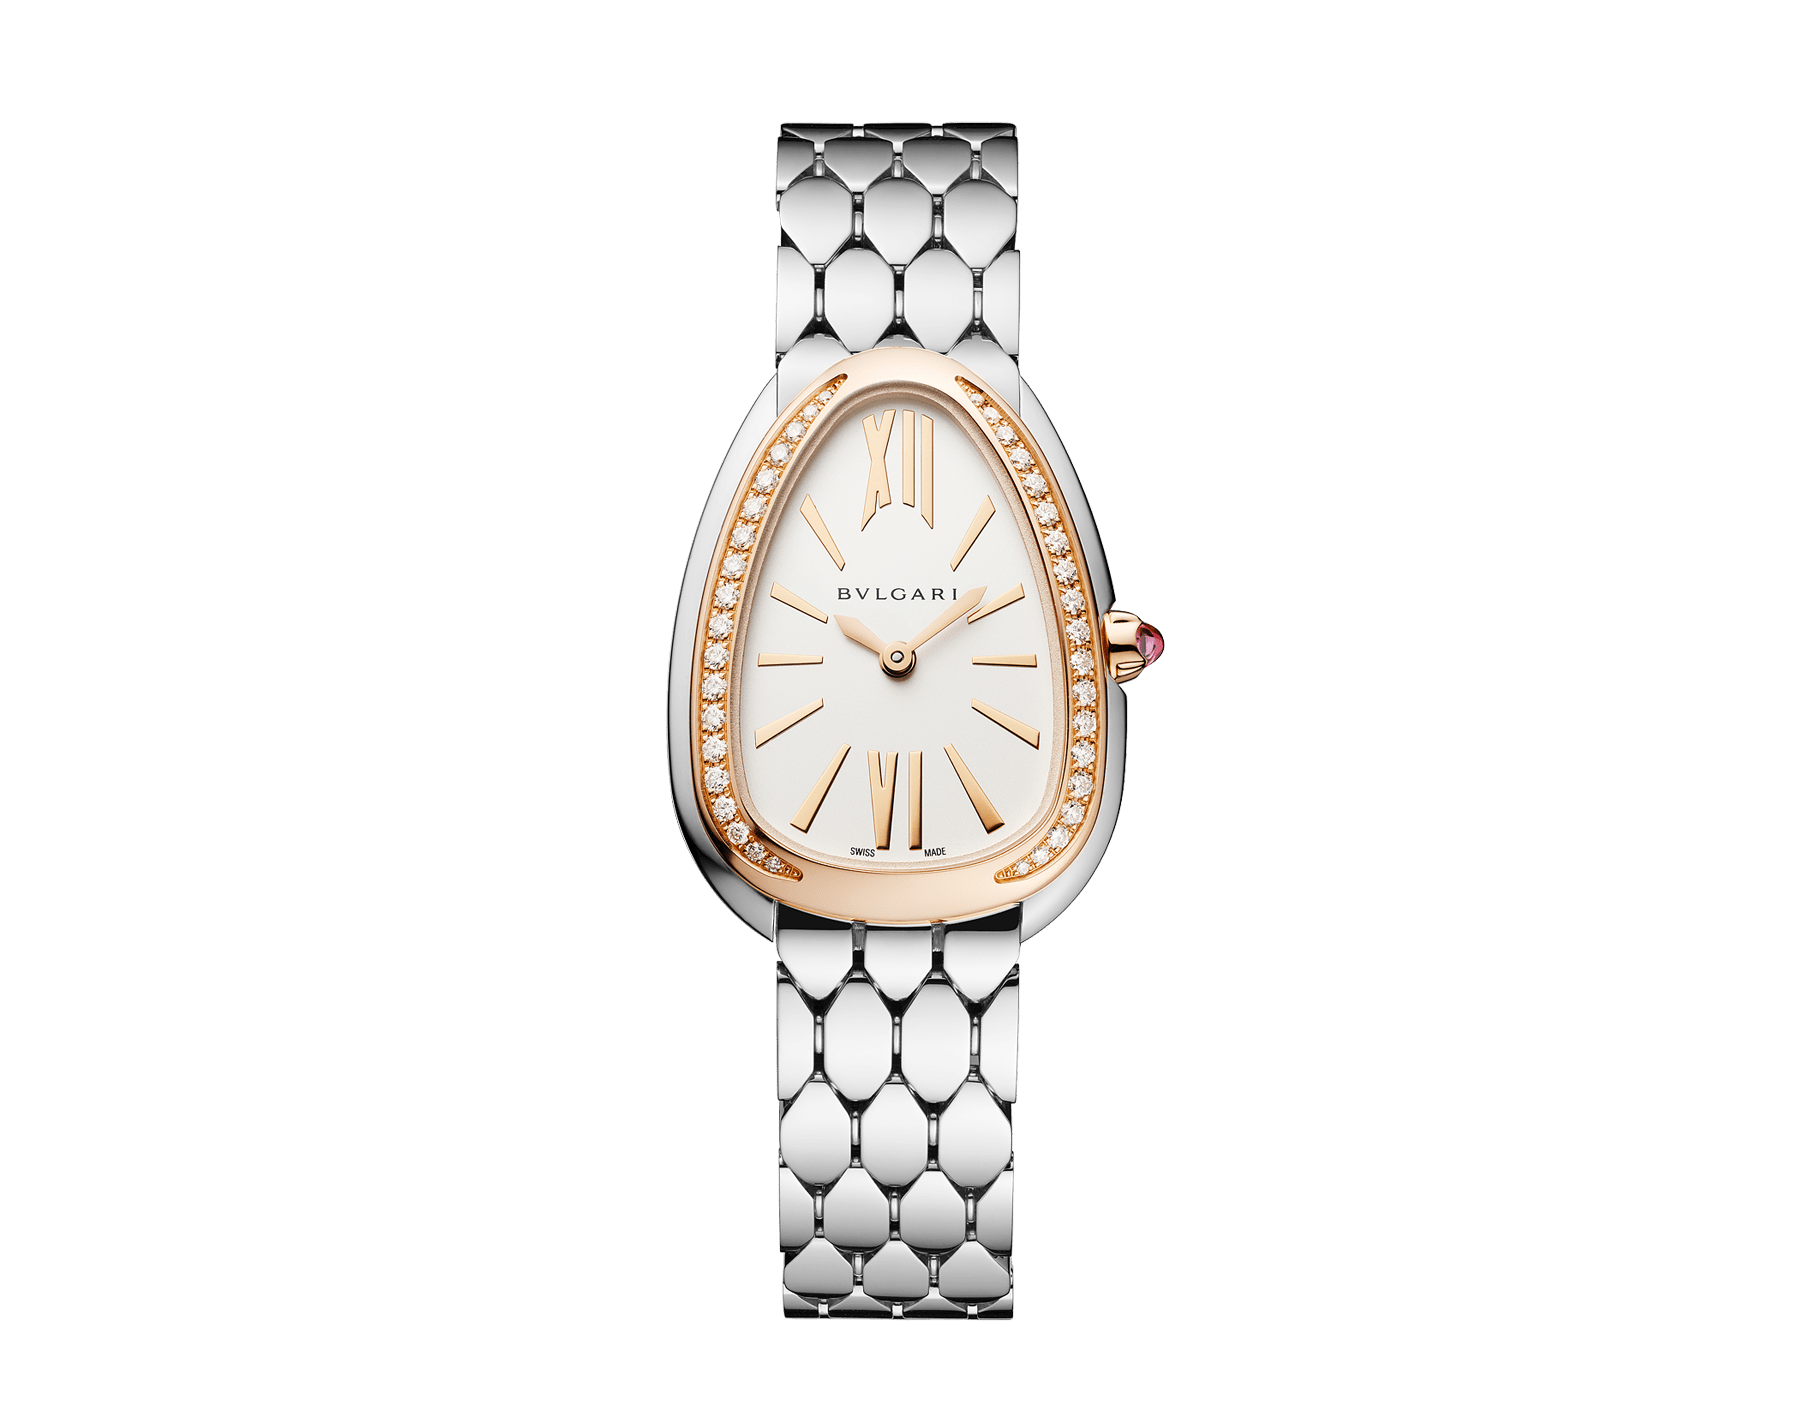 Serpenti Seduttori watch with stainless steel case, stainless steel bracelet, 18 kt rose gold bezel set with diamonds and a white silver opaline dial. 103143 image 1